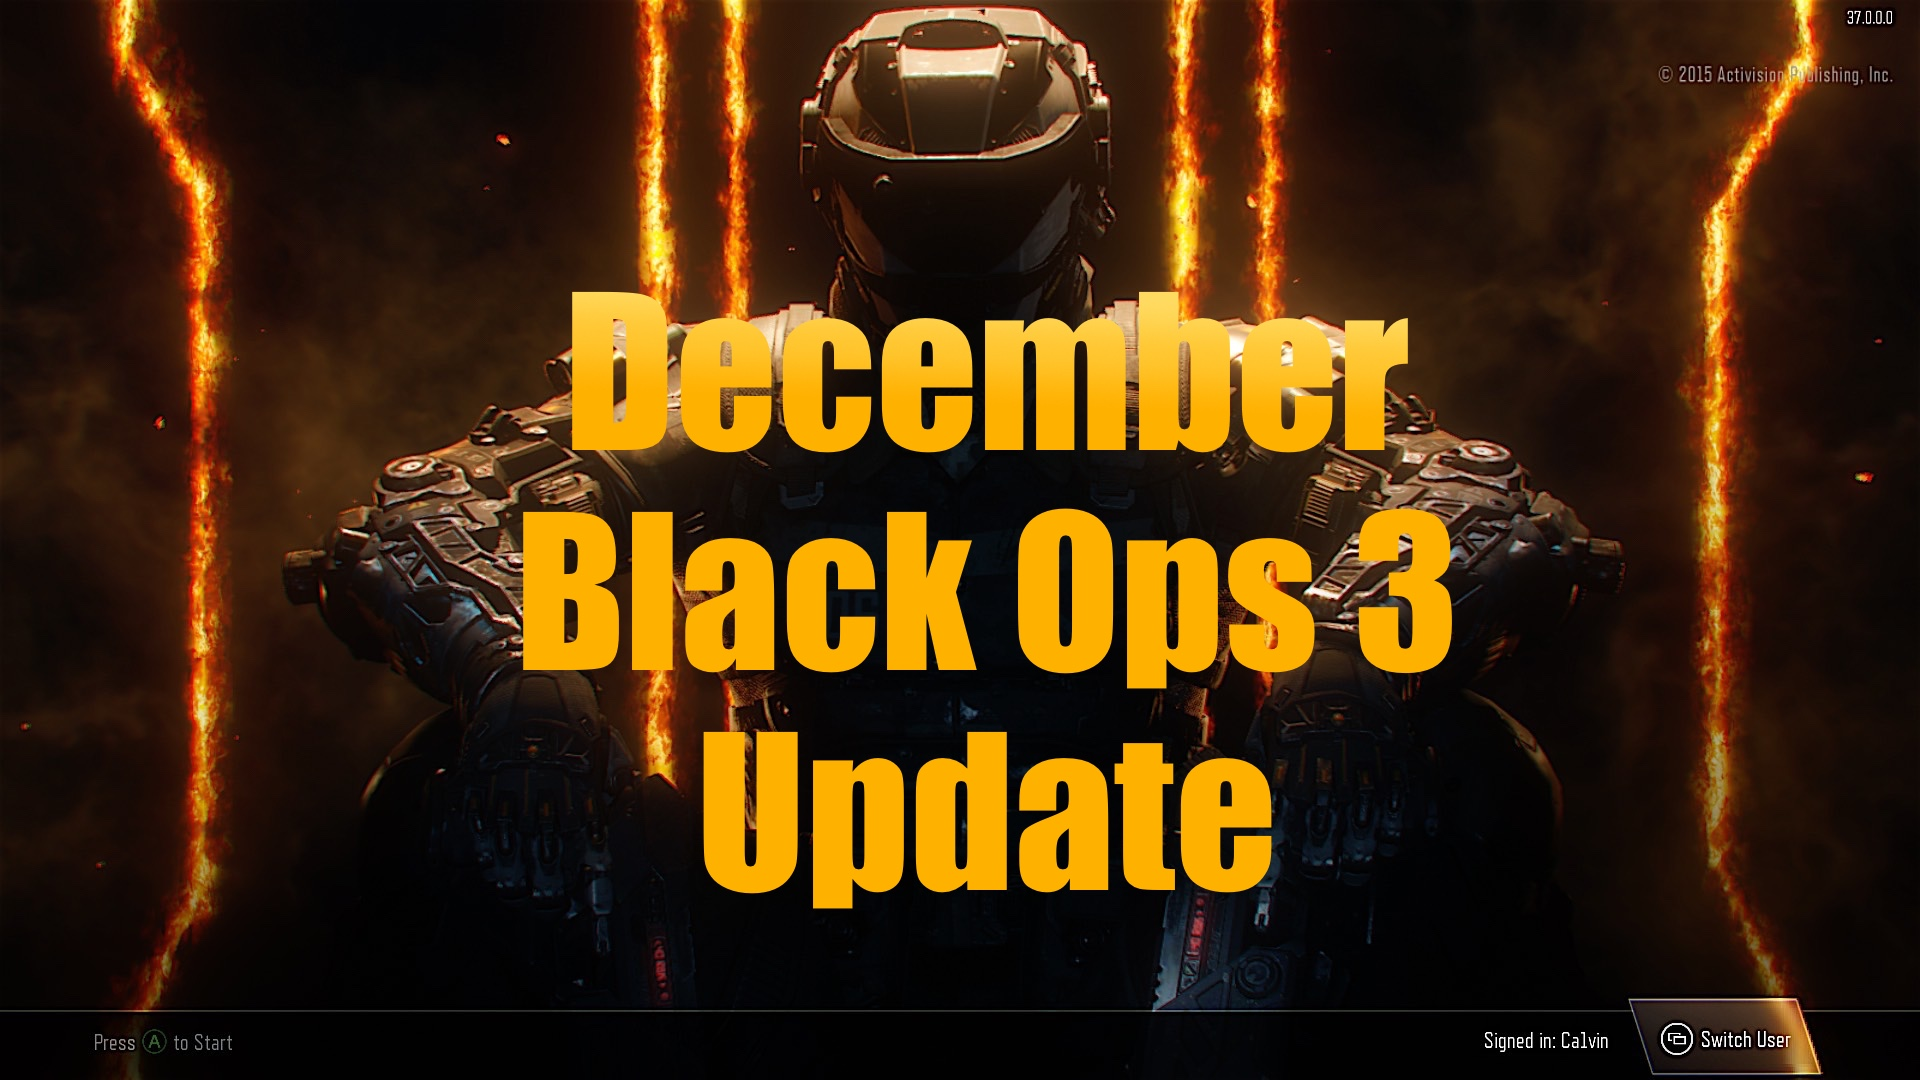 What to expect from the December Black Ops 3 update.